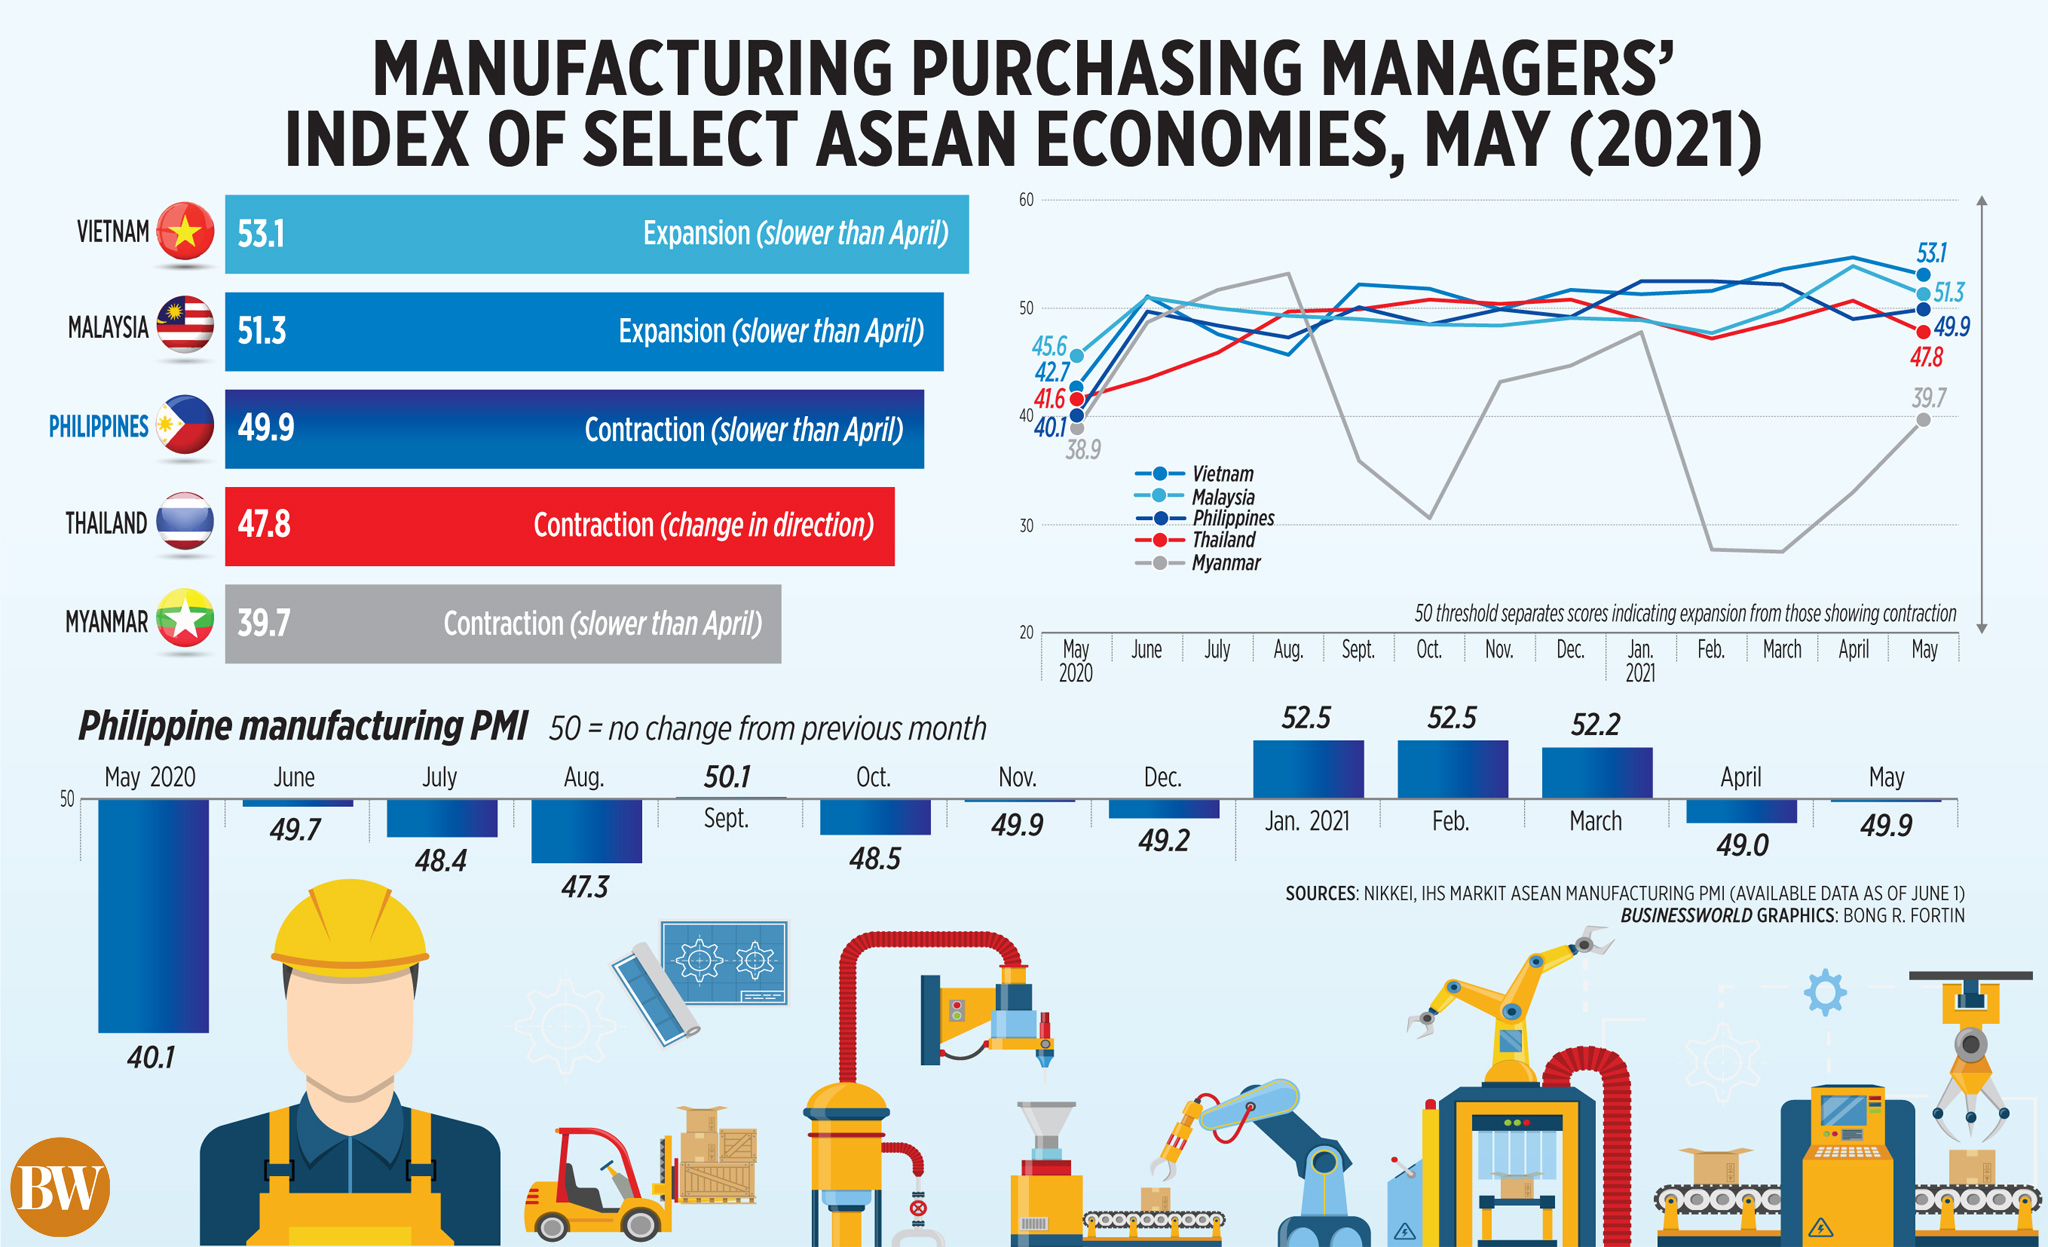 Manufacturing Purchasing Managers' Index of Select ASEAN Economies, May (2021)